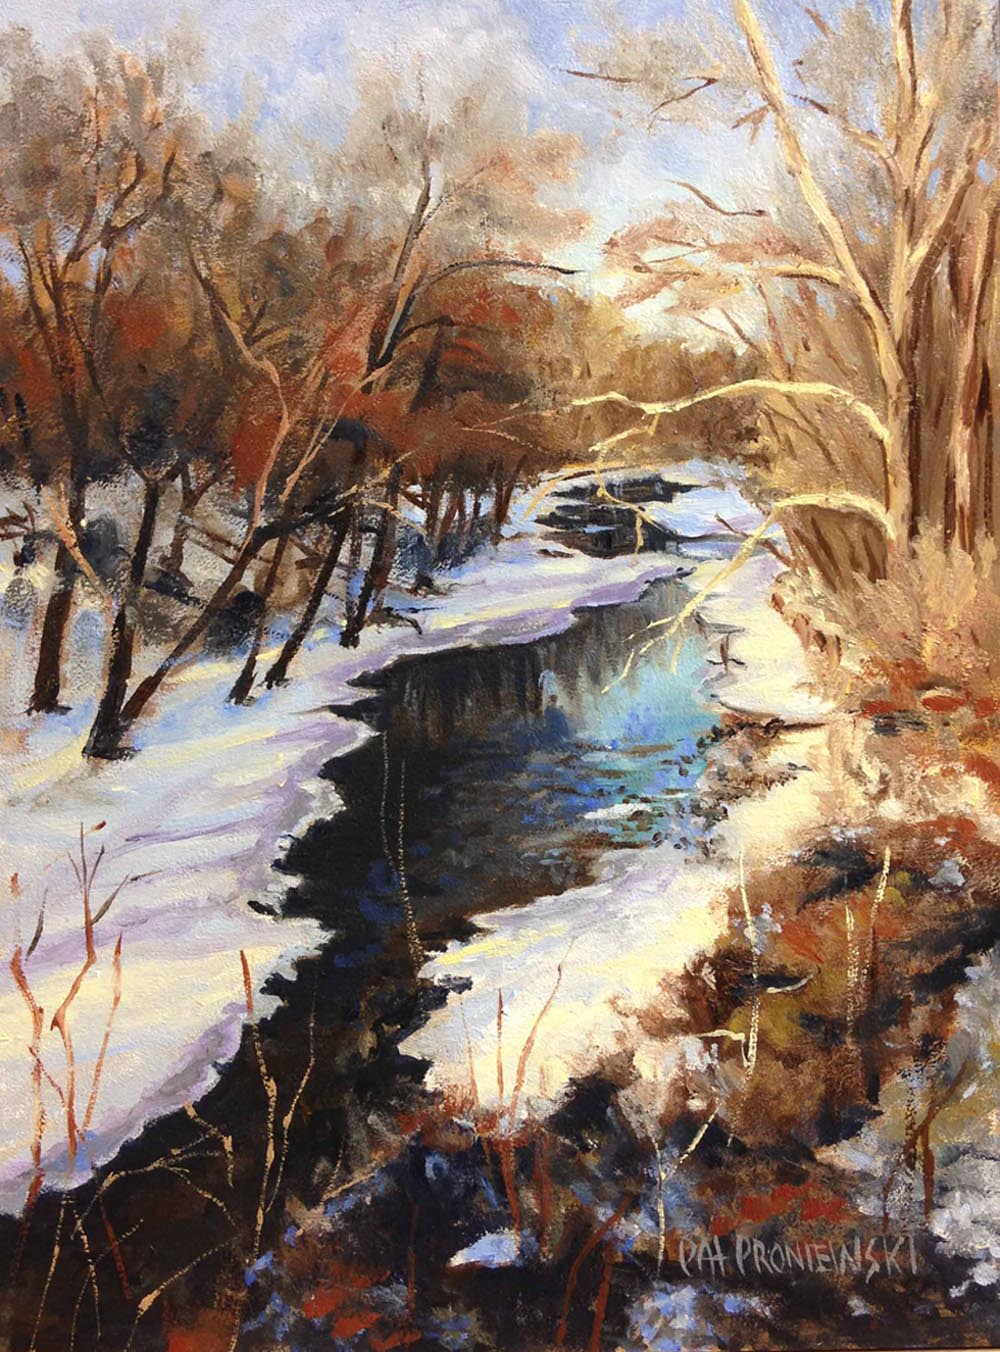 proniewskipat,moore'screek,oil,6x8,$275.jpg